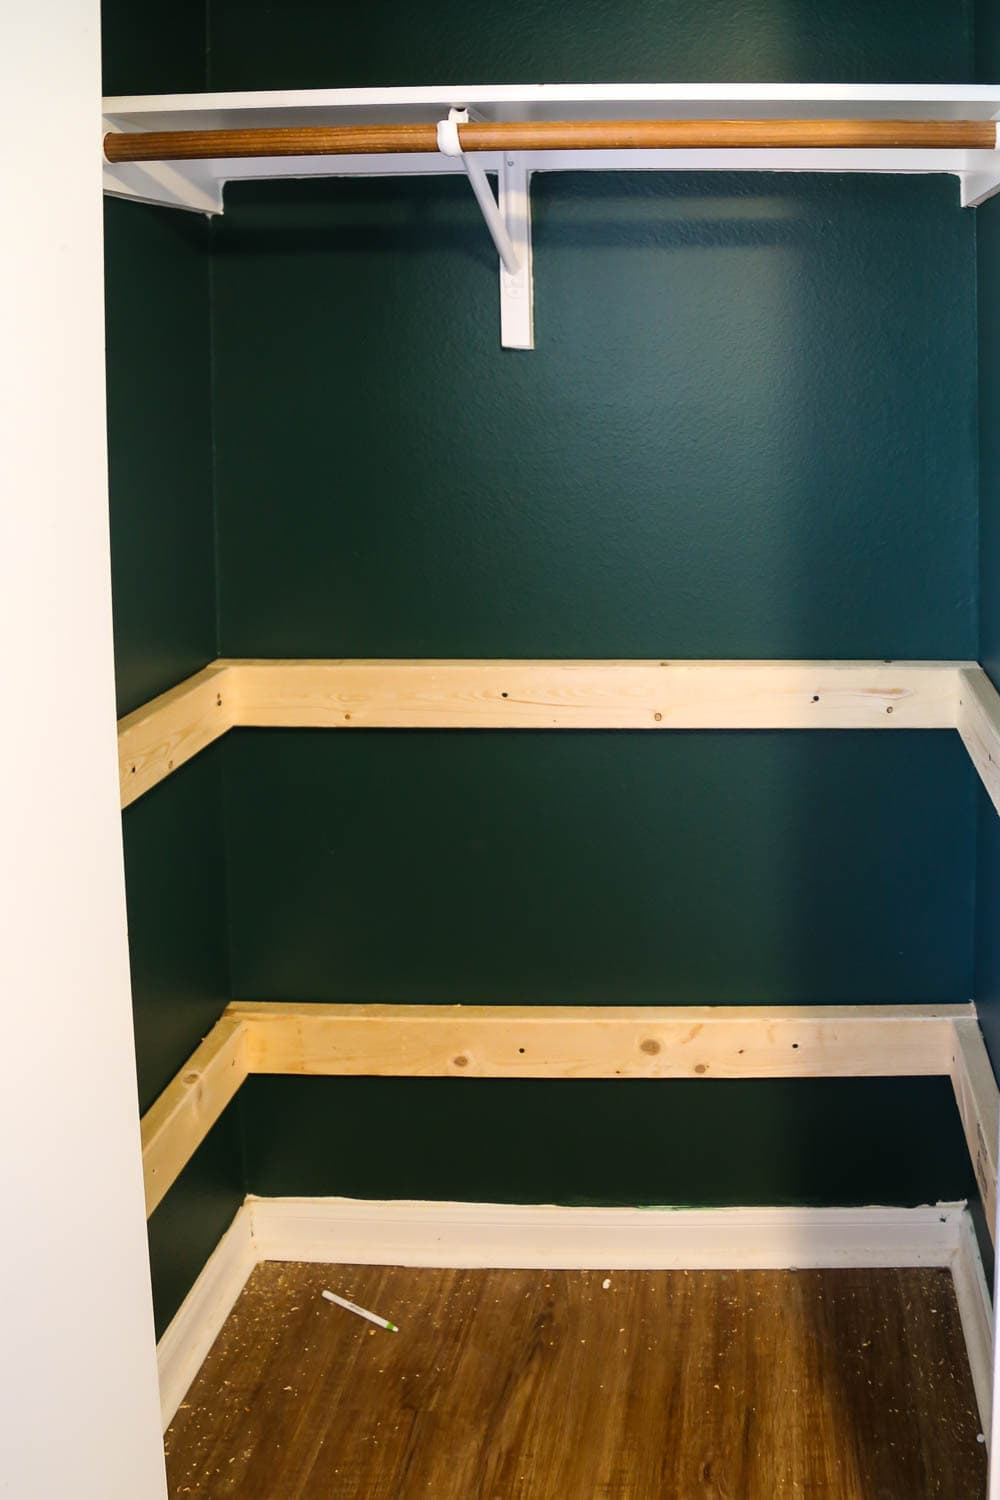 support boards for closet shelving